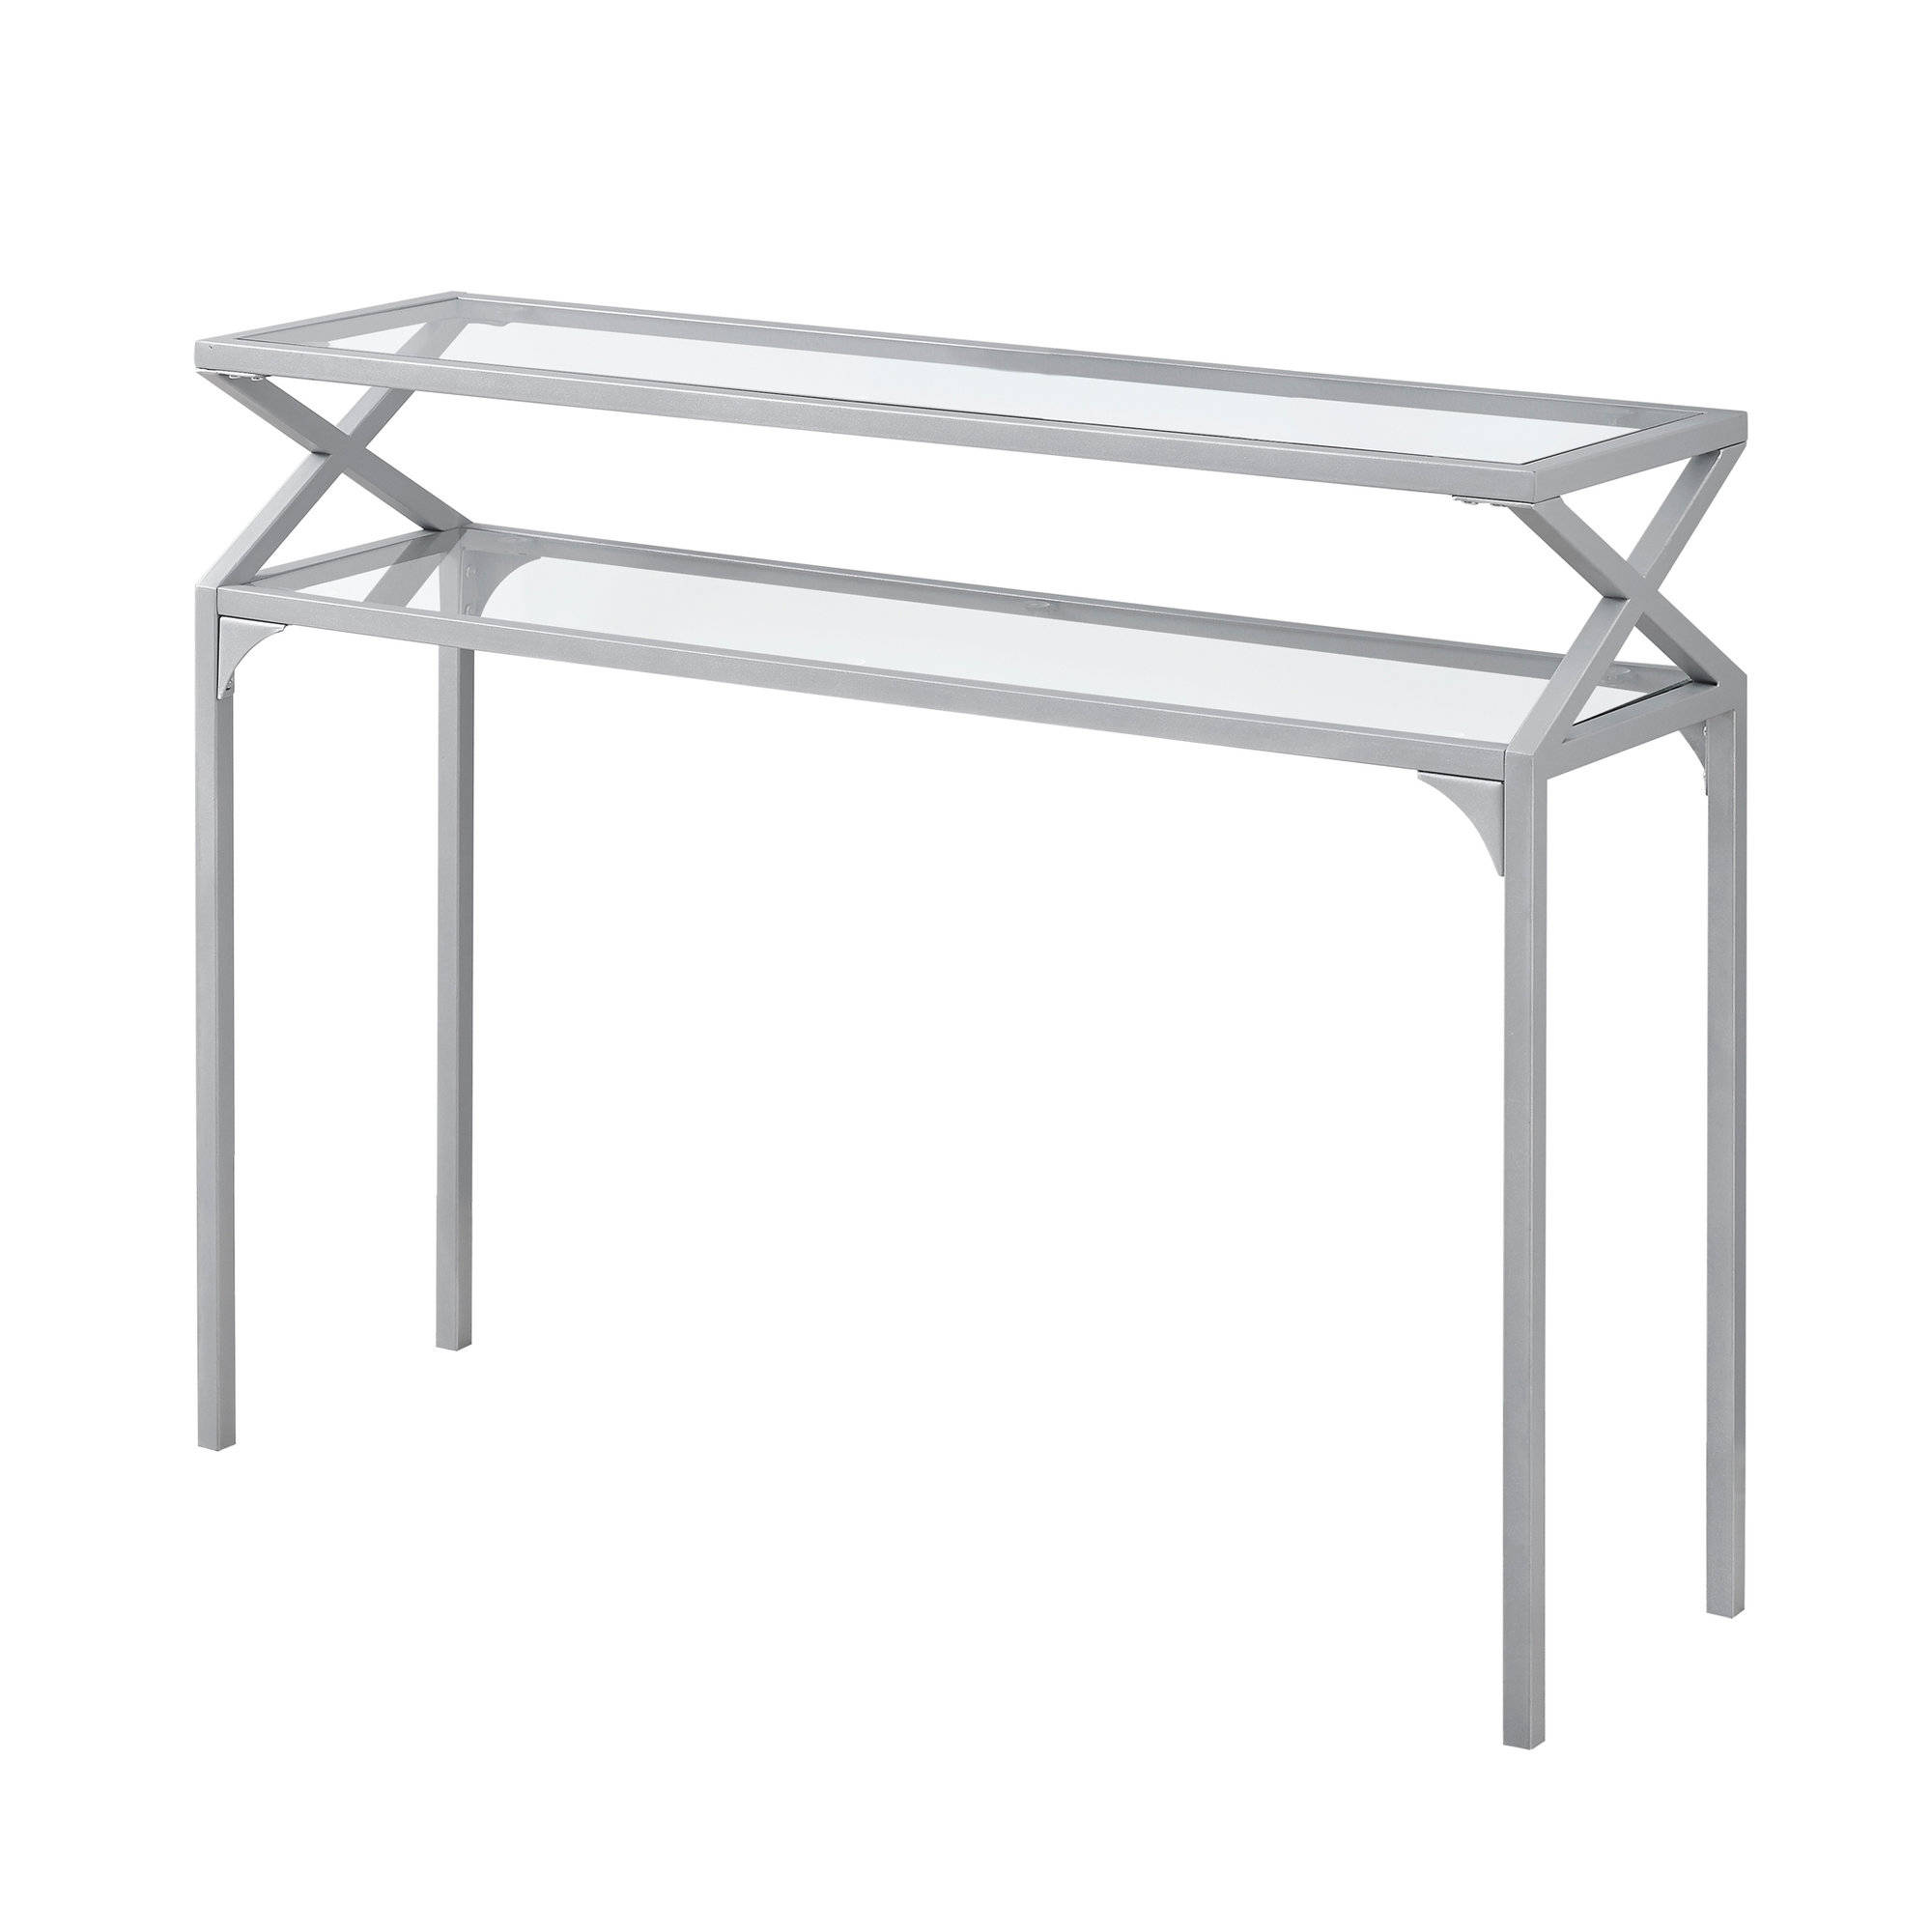 monarch specialties silver clear hall console accent table the mnc click enlarge threshold trim black and gold outdoor bbq grill bedroom furniture iron bedside bunnings garden